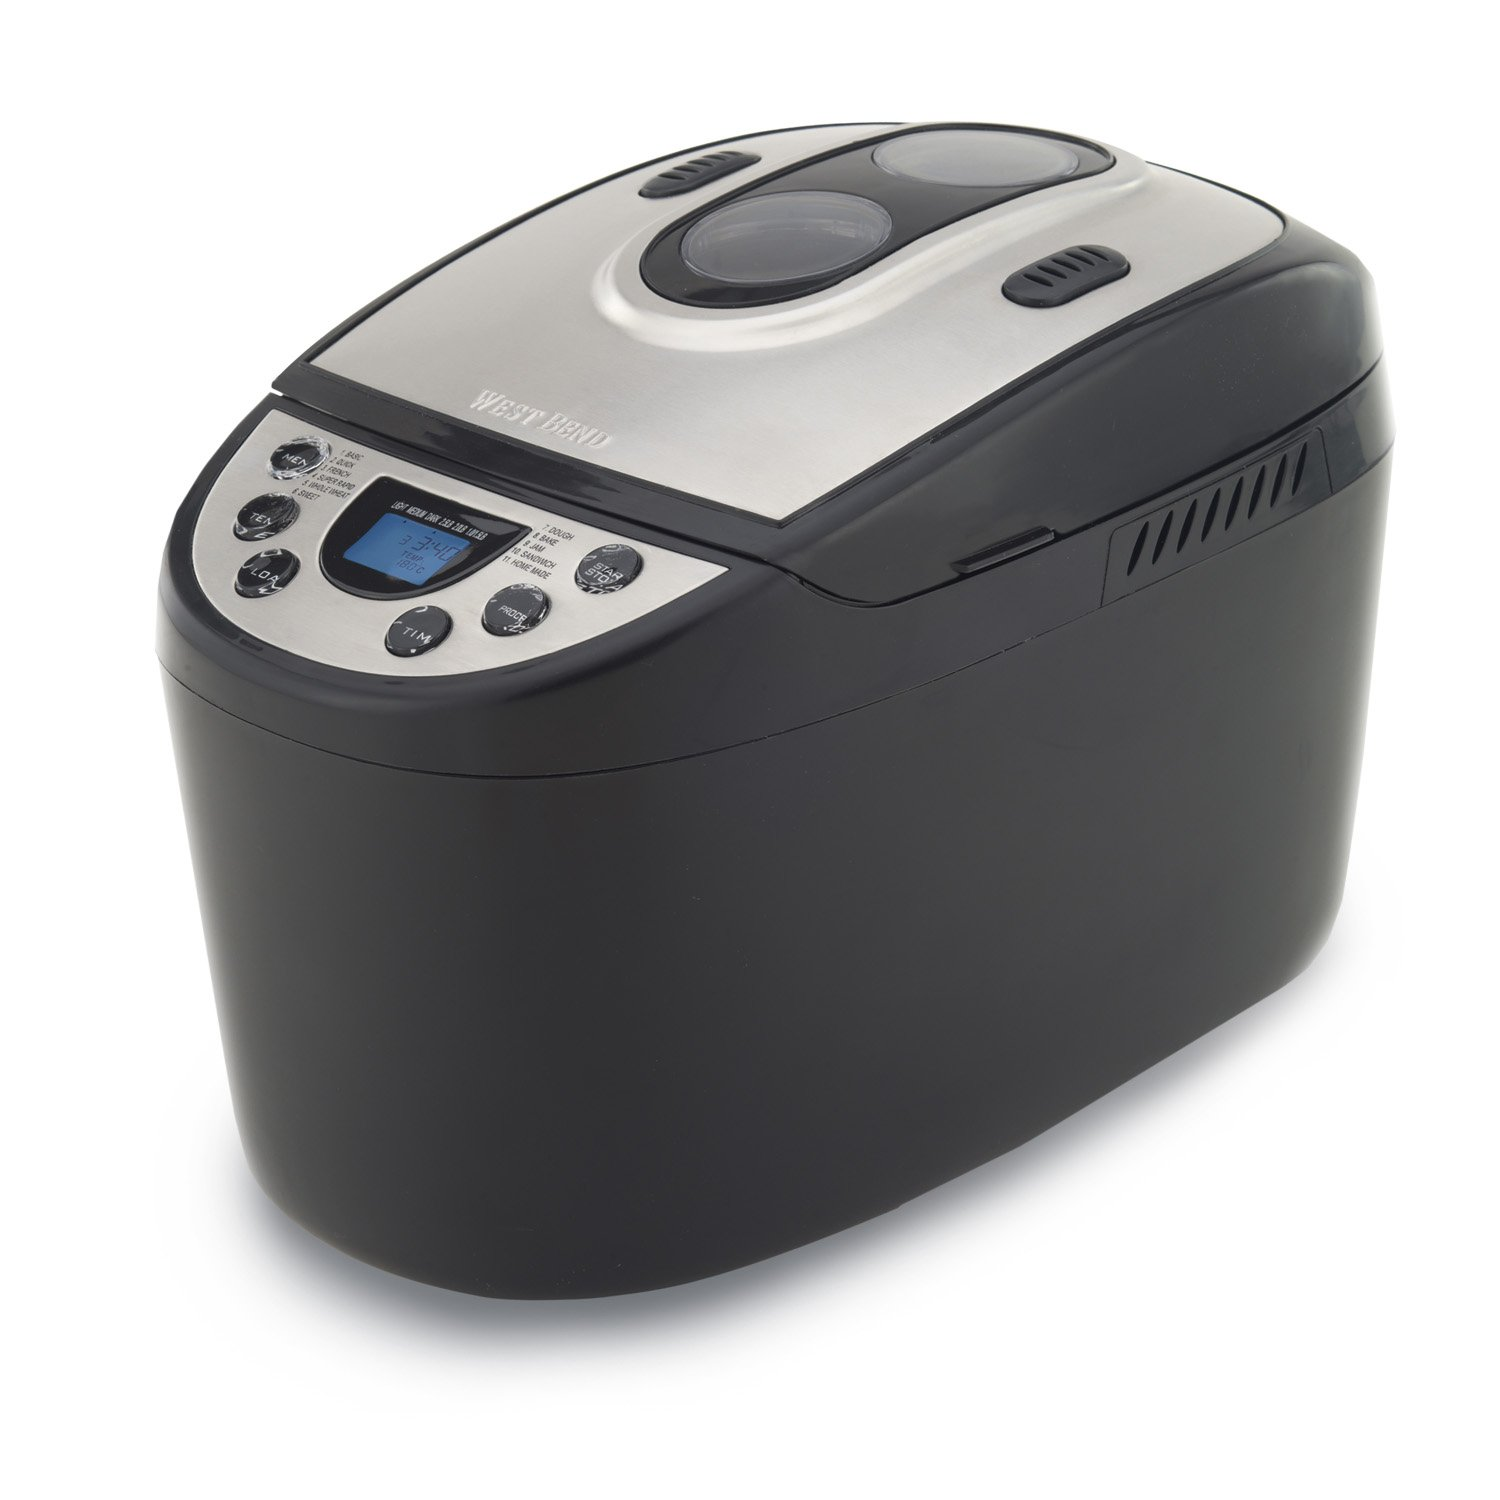 West Bend 41300 Breadmaker br392 Customer Reviews